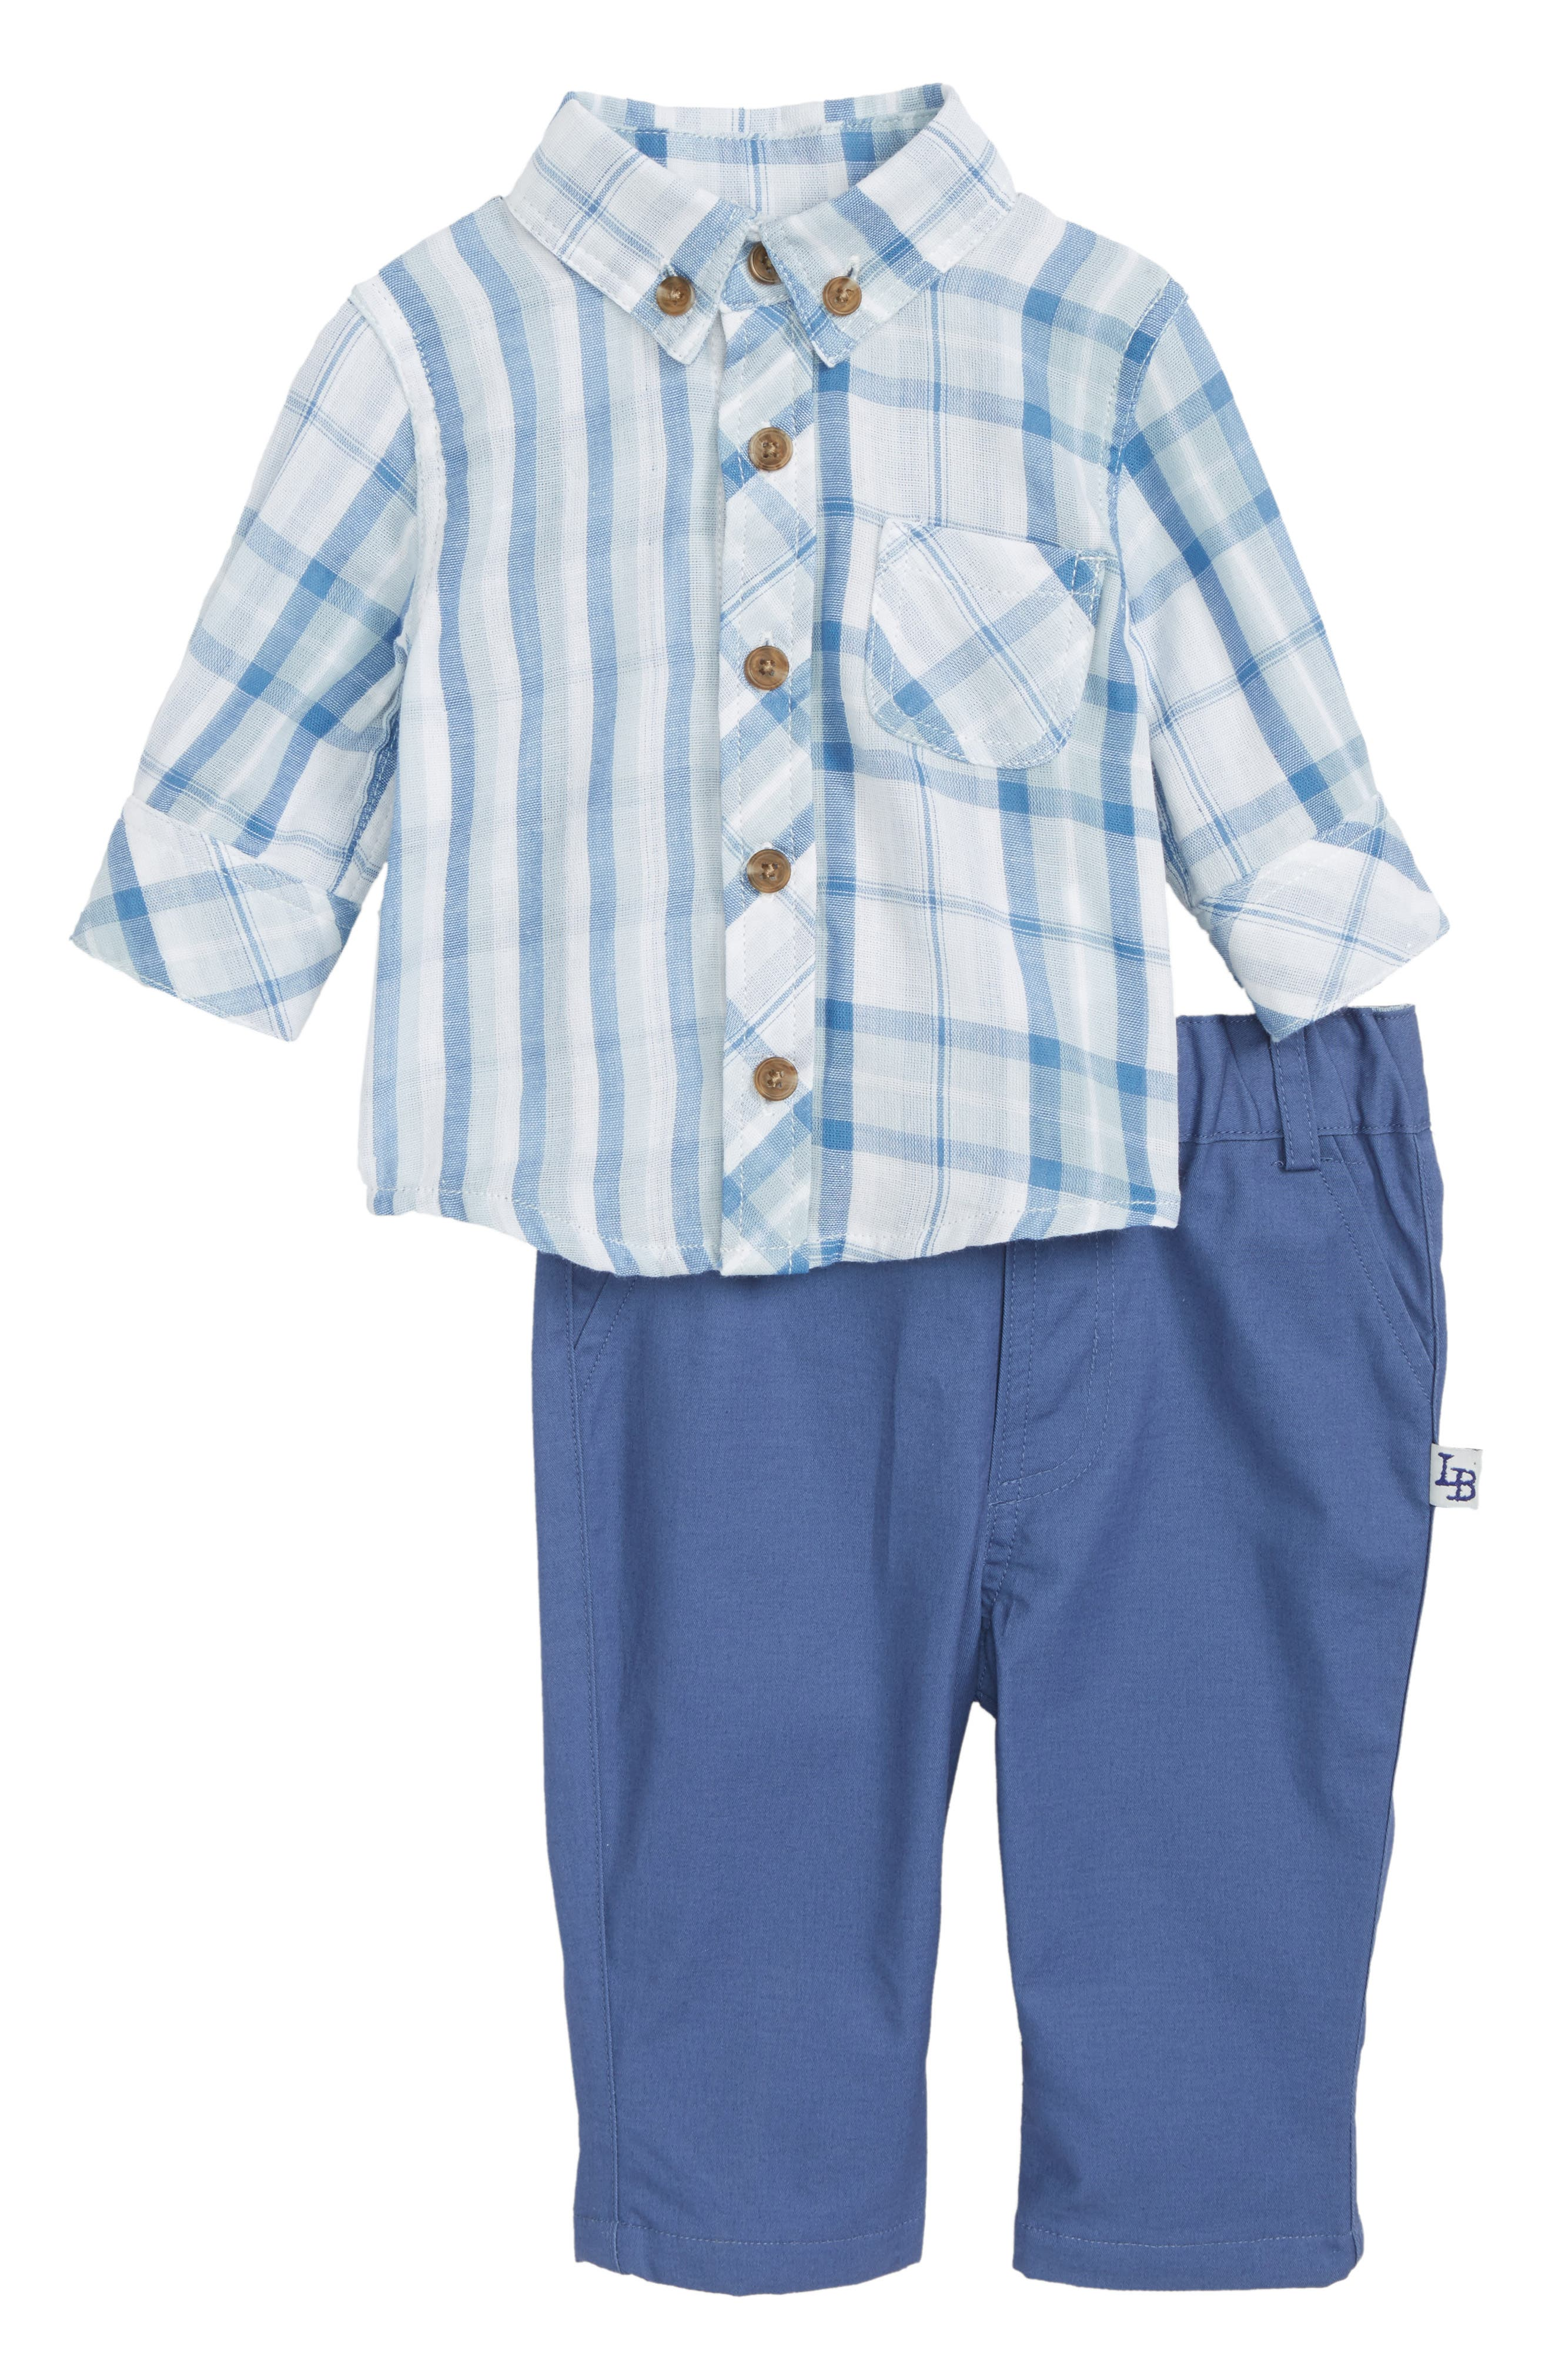 LITTLE BROTHER BY PIPPA & JULIE Mixed Plaid Top & Pants Set, Main, color, 400